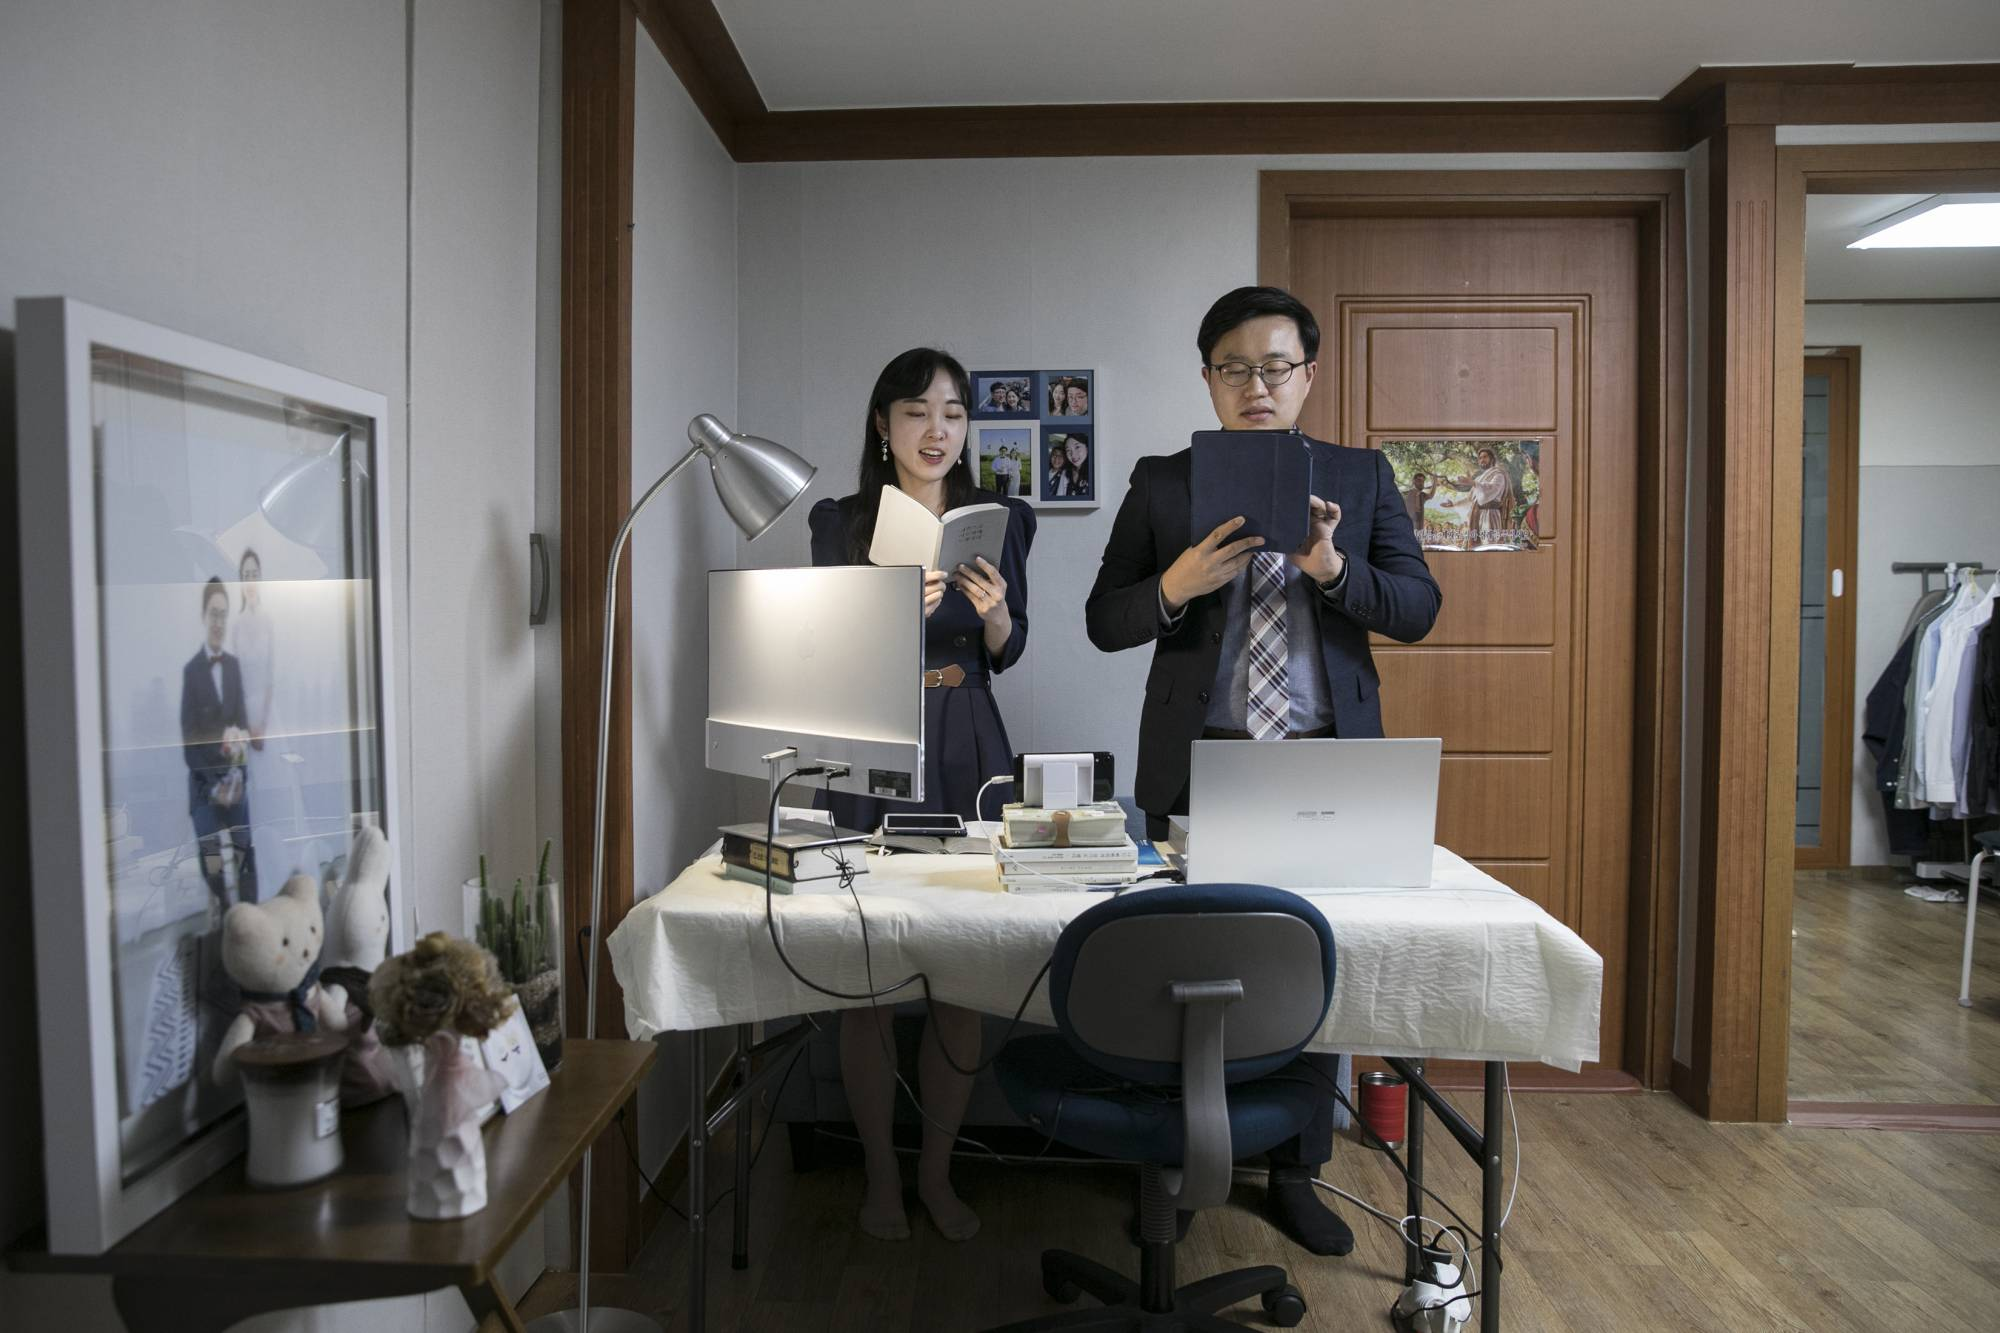 Kim Keun-hyeong, a conscientious objector, and his wife, Kim Seoyoung, prepare for an online church service in Bucheon, South Korea. | WOOHAE CHO / THE NEW YORK TIMES